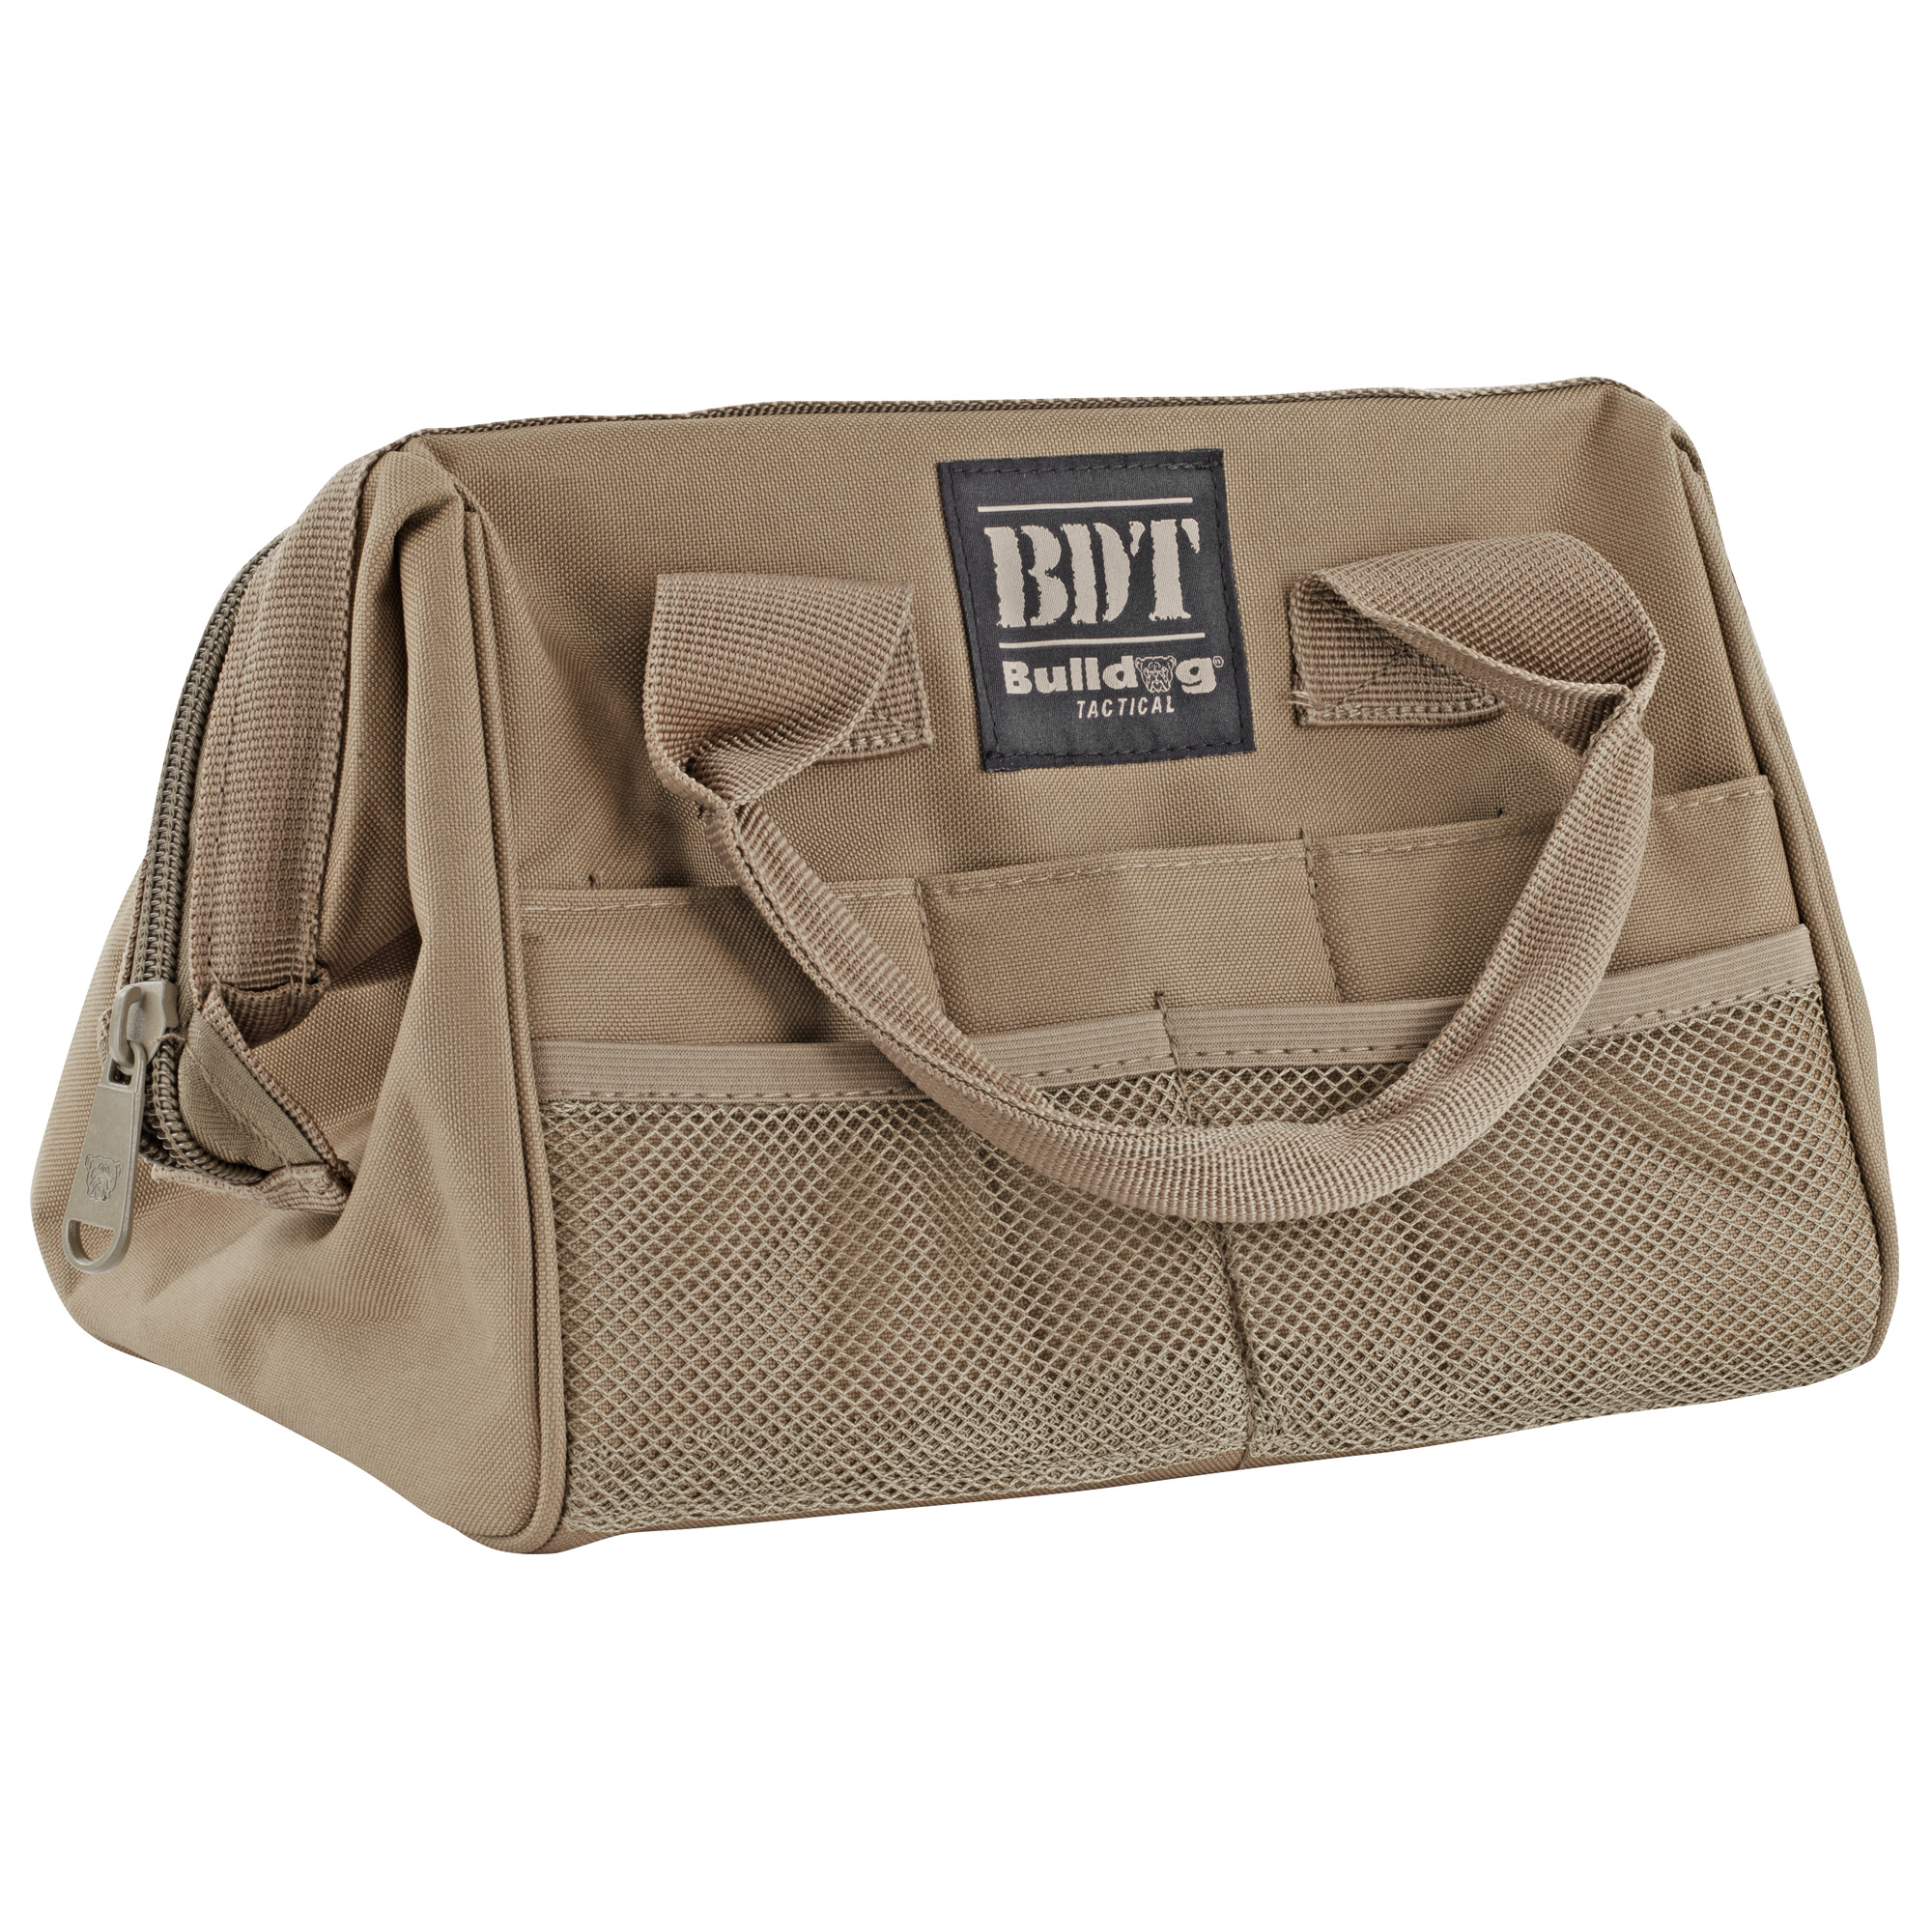 Bulldog Cases Bulldog Tact Ammo & Acc Bag Tan